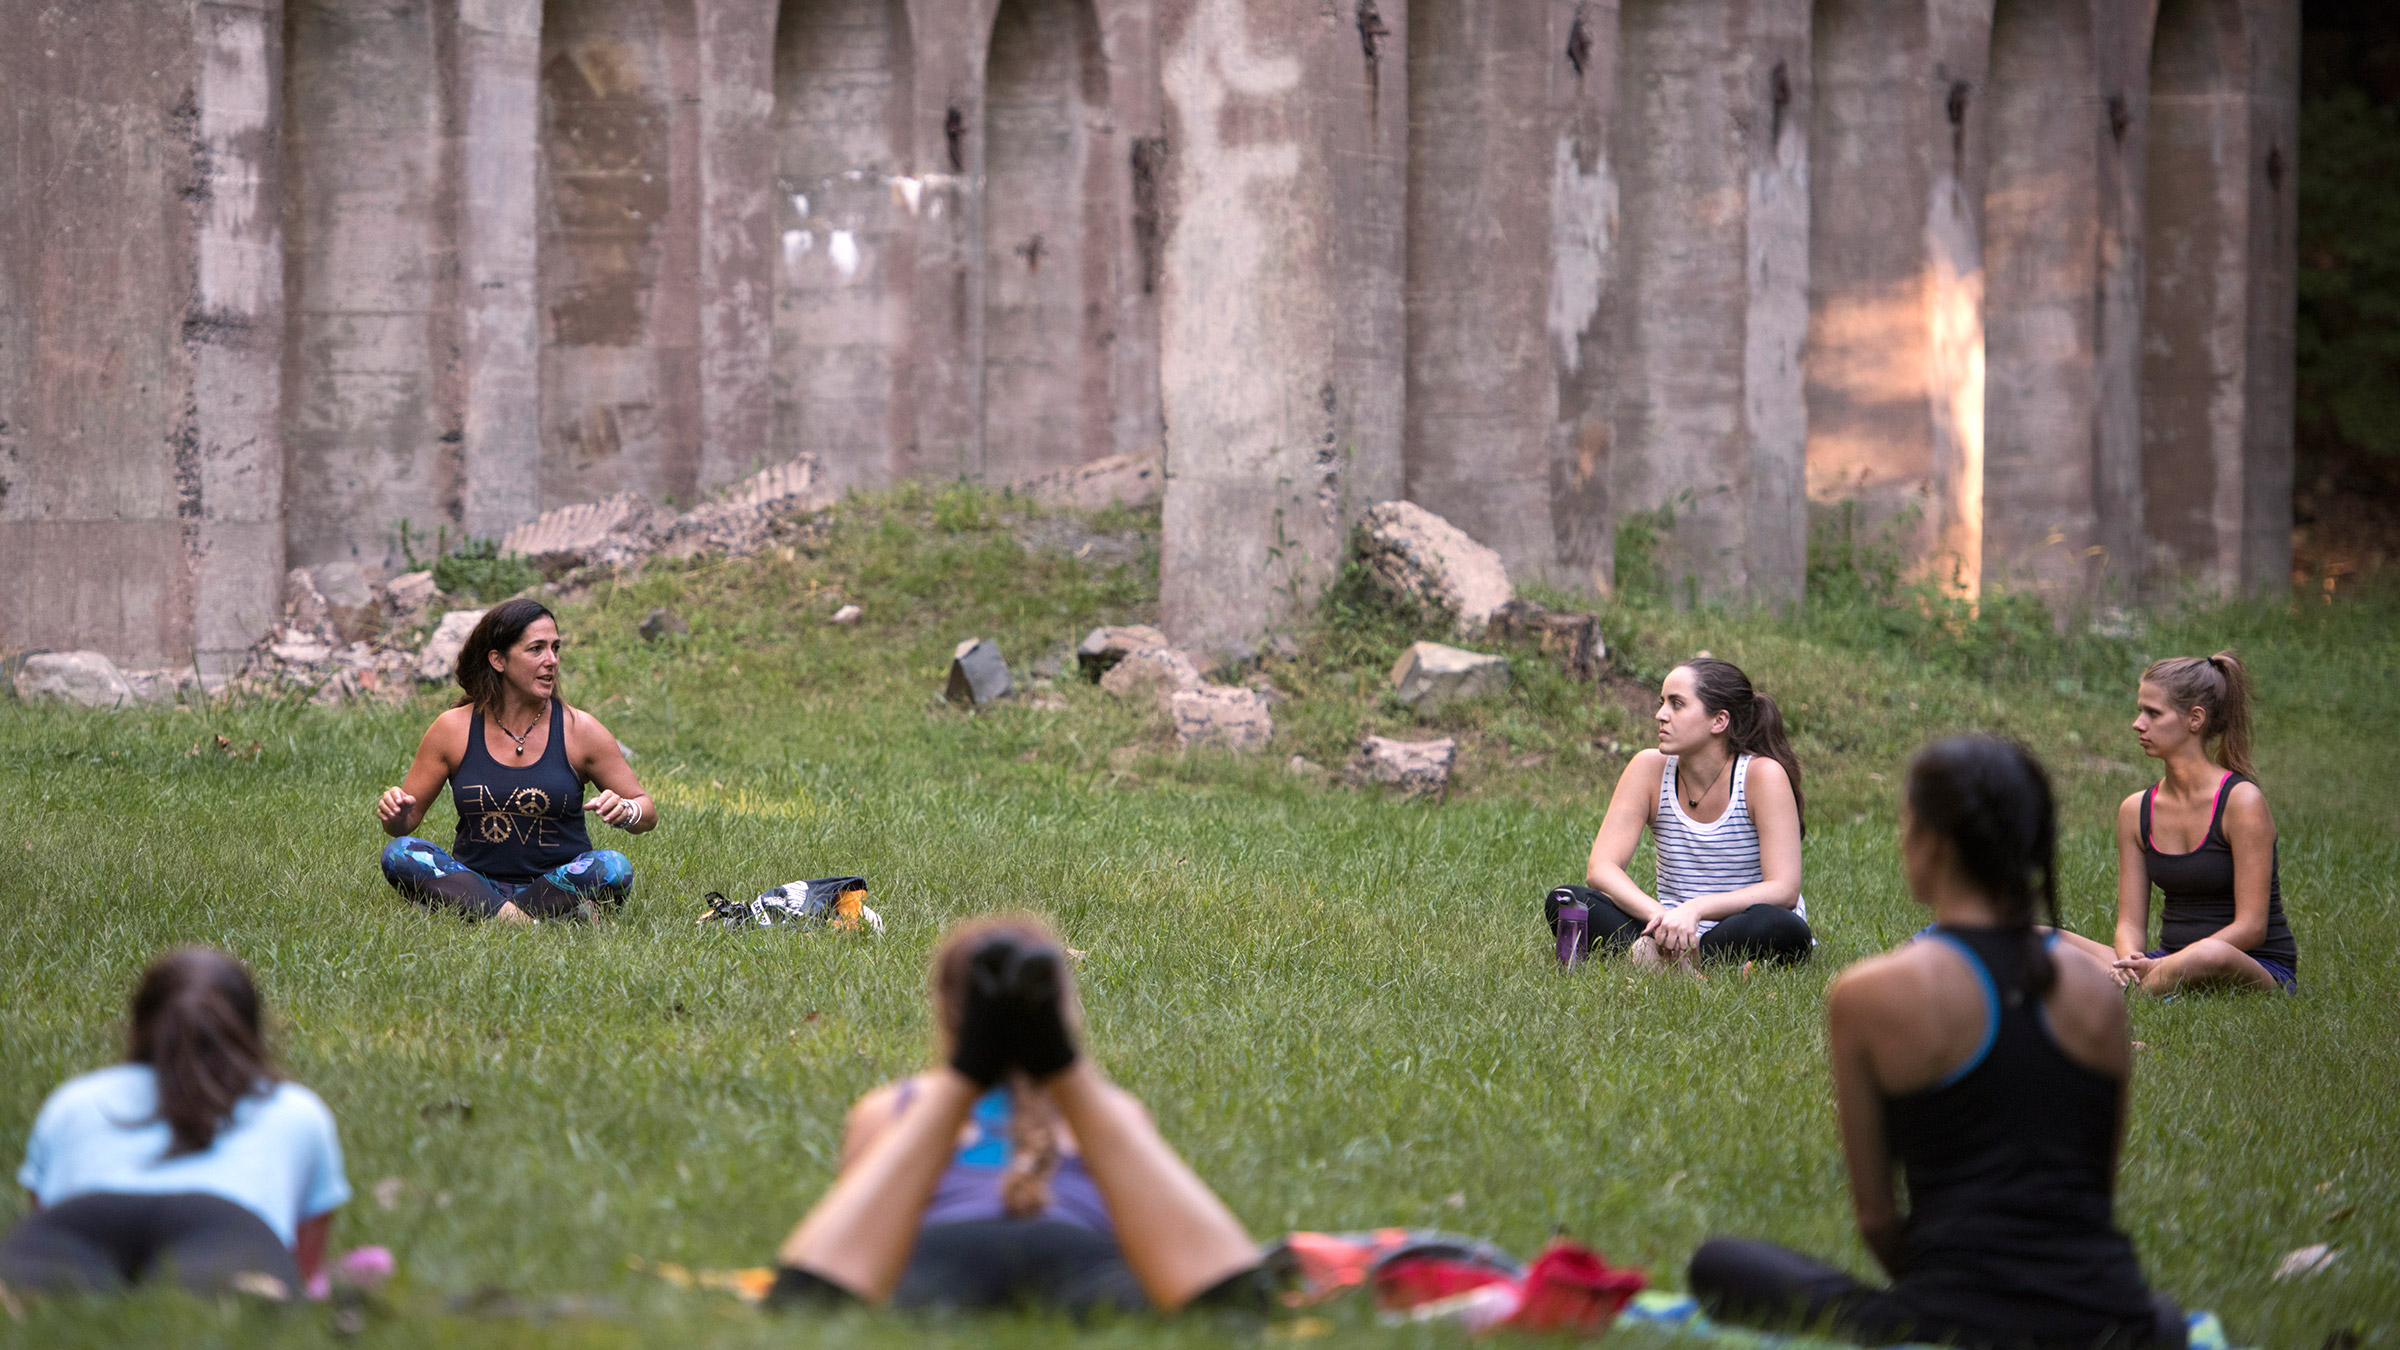 Yoga participants sit cross-legged in a circle in the grass beside the Sleeping Giant castle